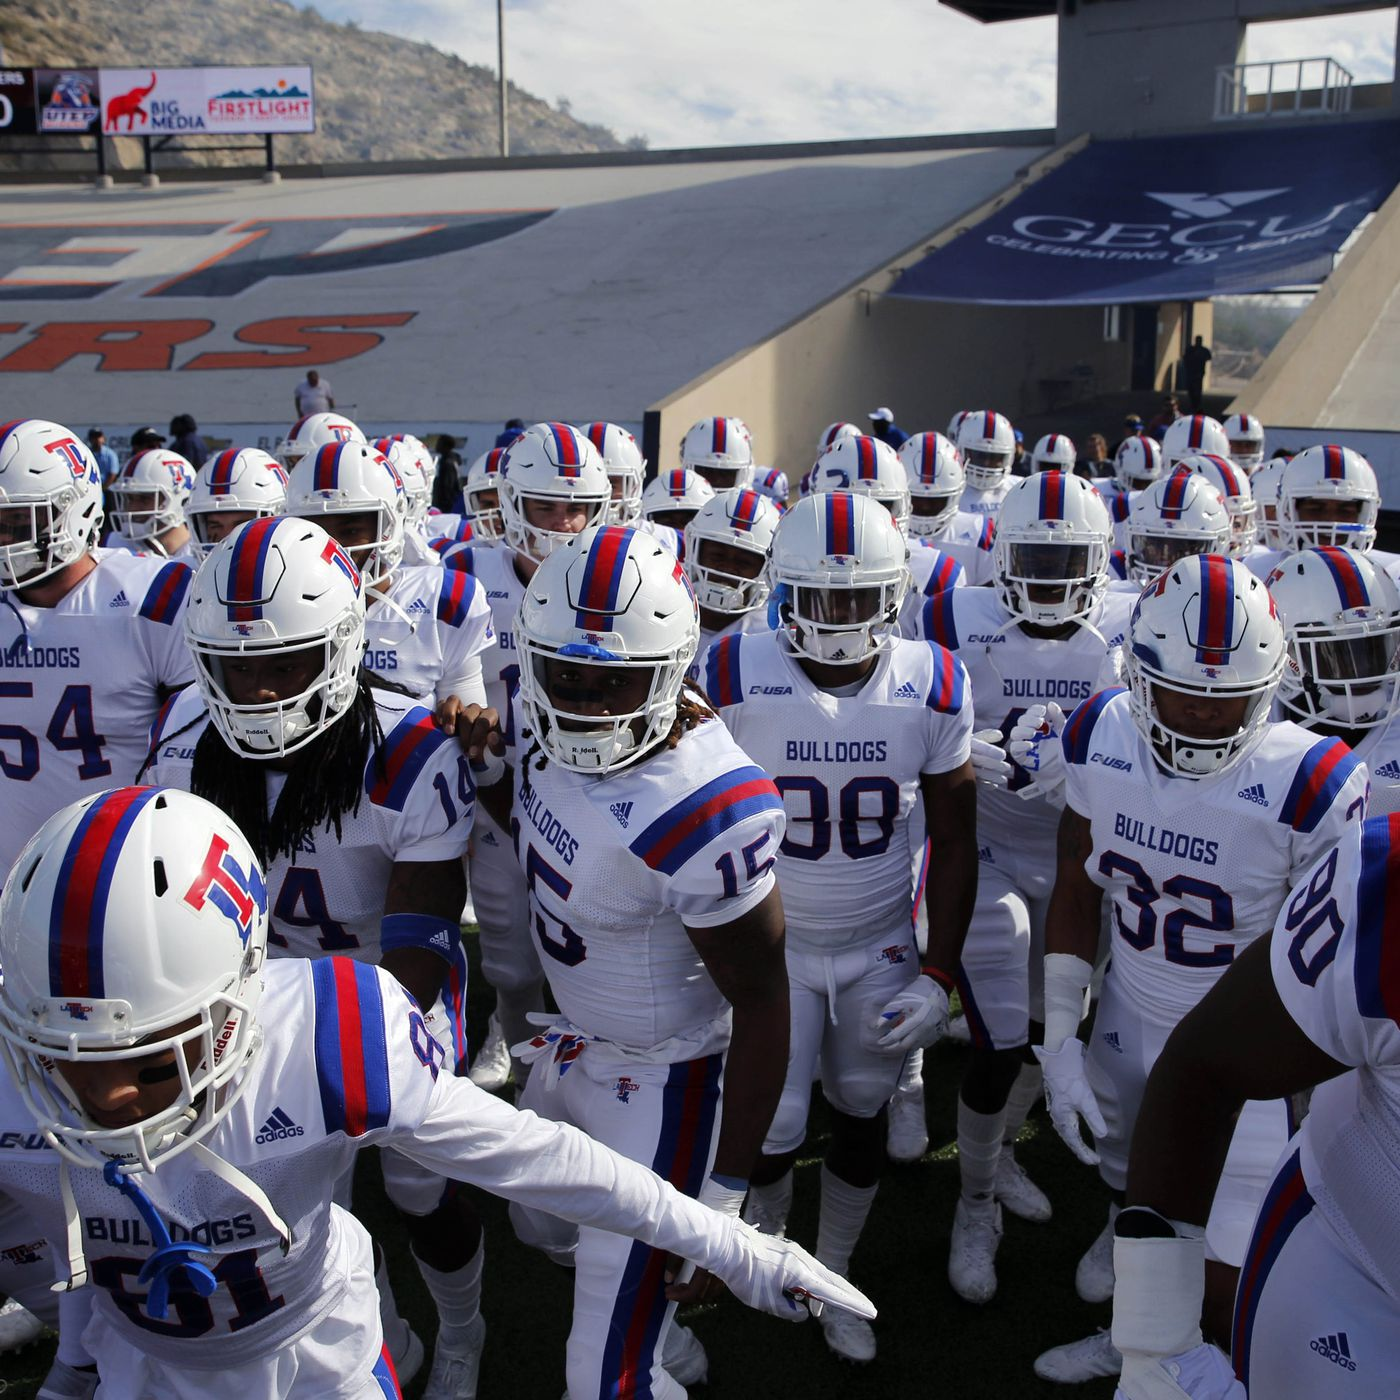 Tech smu betting line papal candidates betting websites